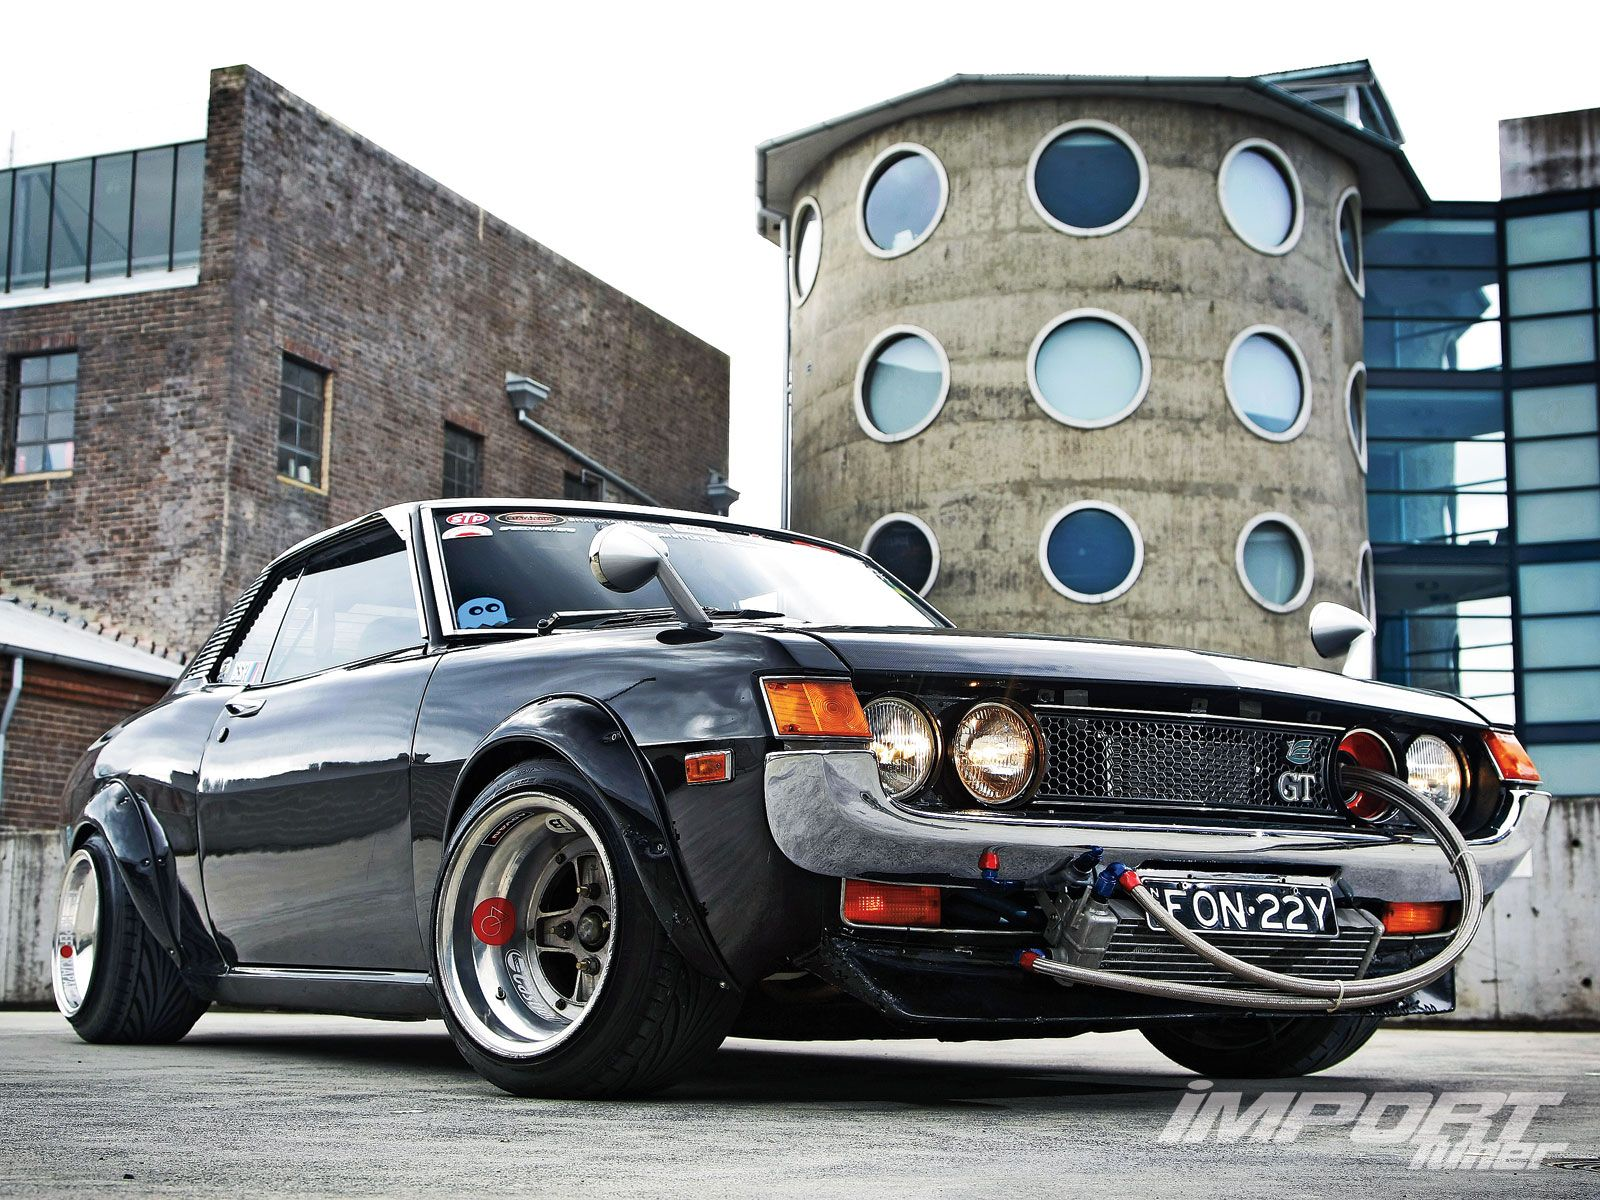 top-old-school-chassis-ra20-toyota-celica-ssr-mk2-05